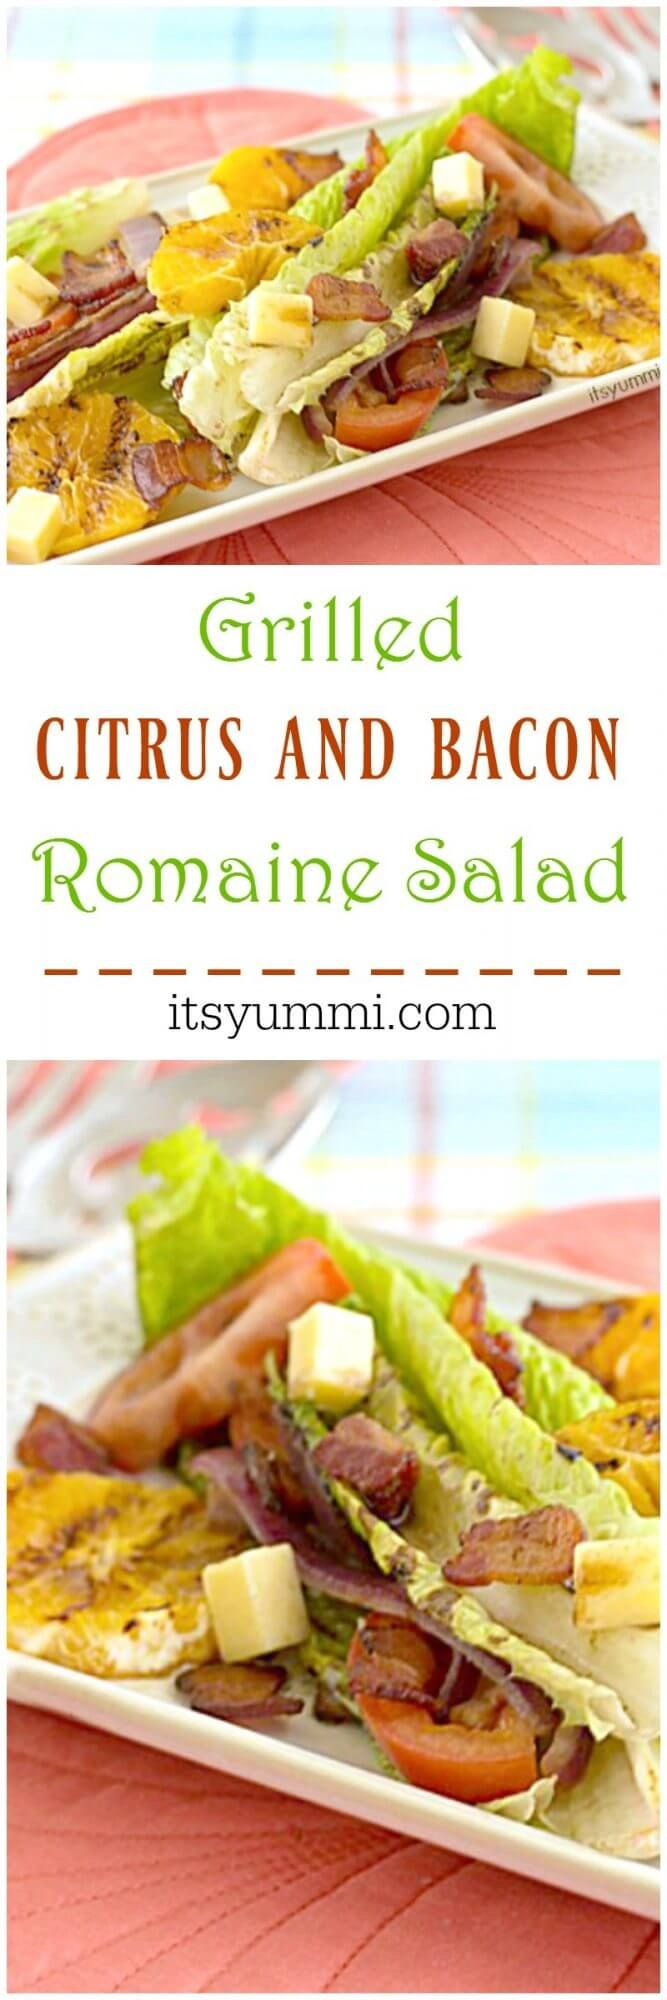 Grilled Romaine Salad With Grilled Oranges, Avocado, Bacon ...